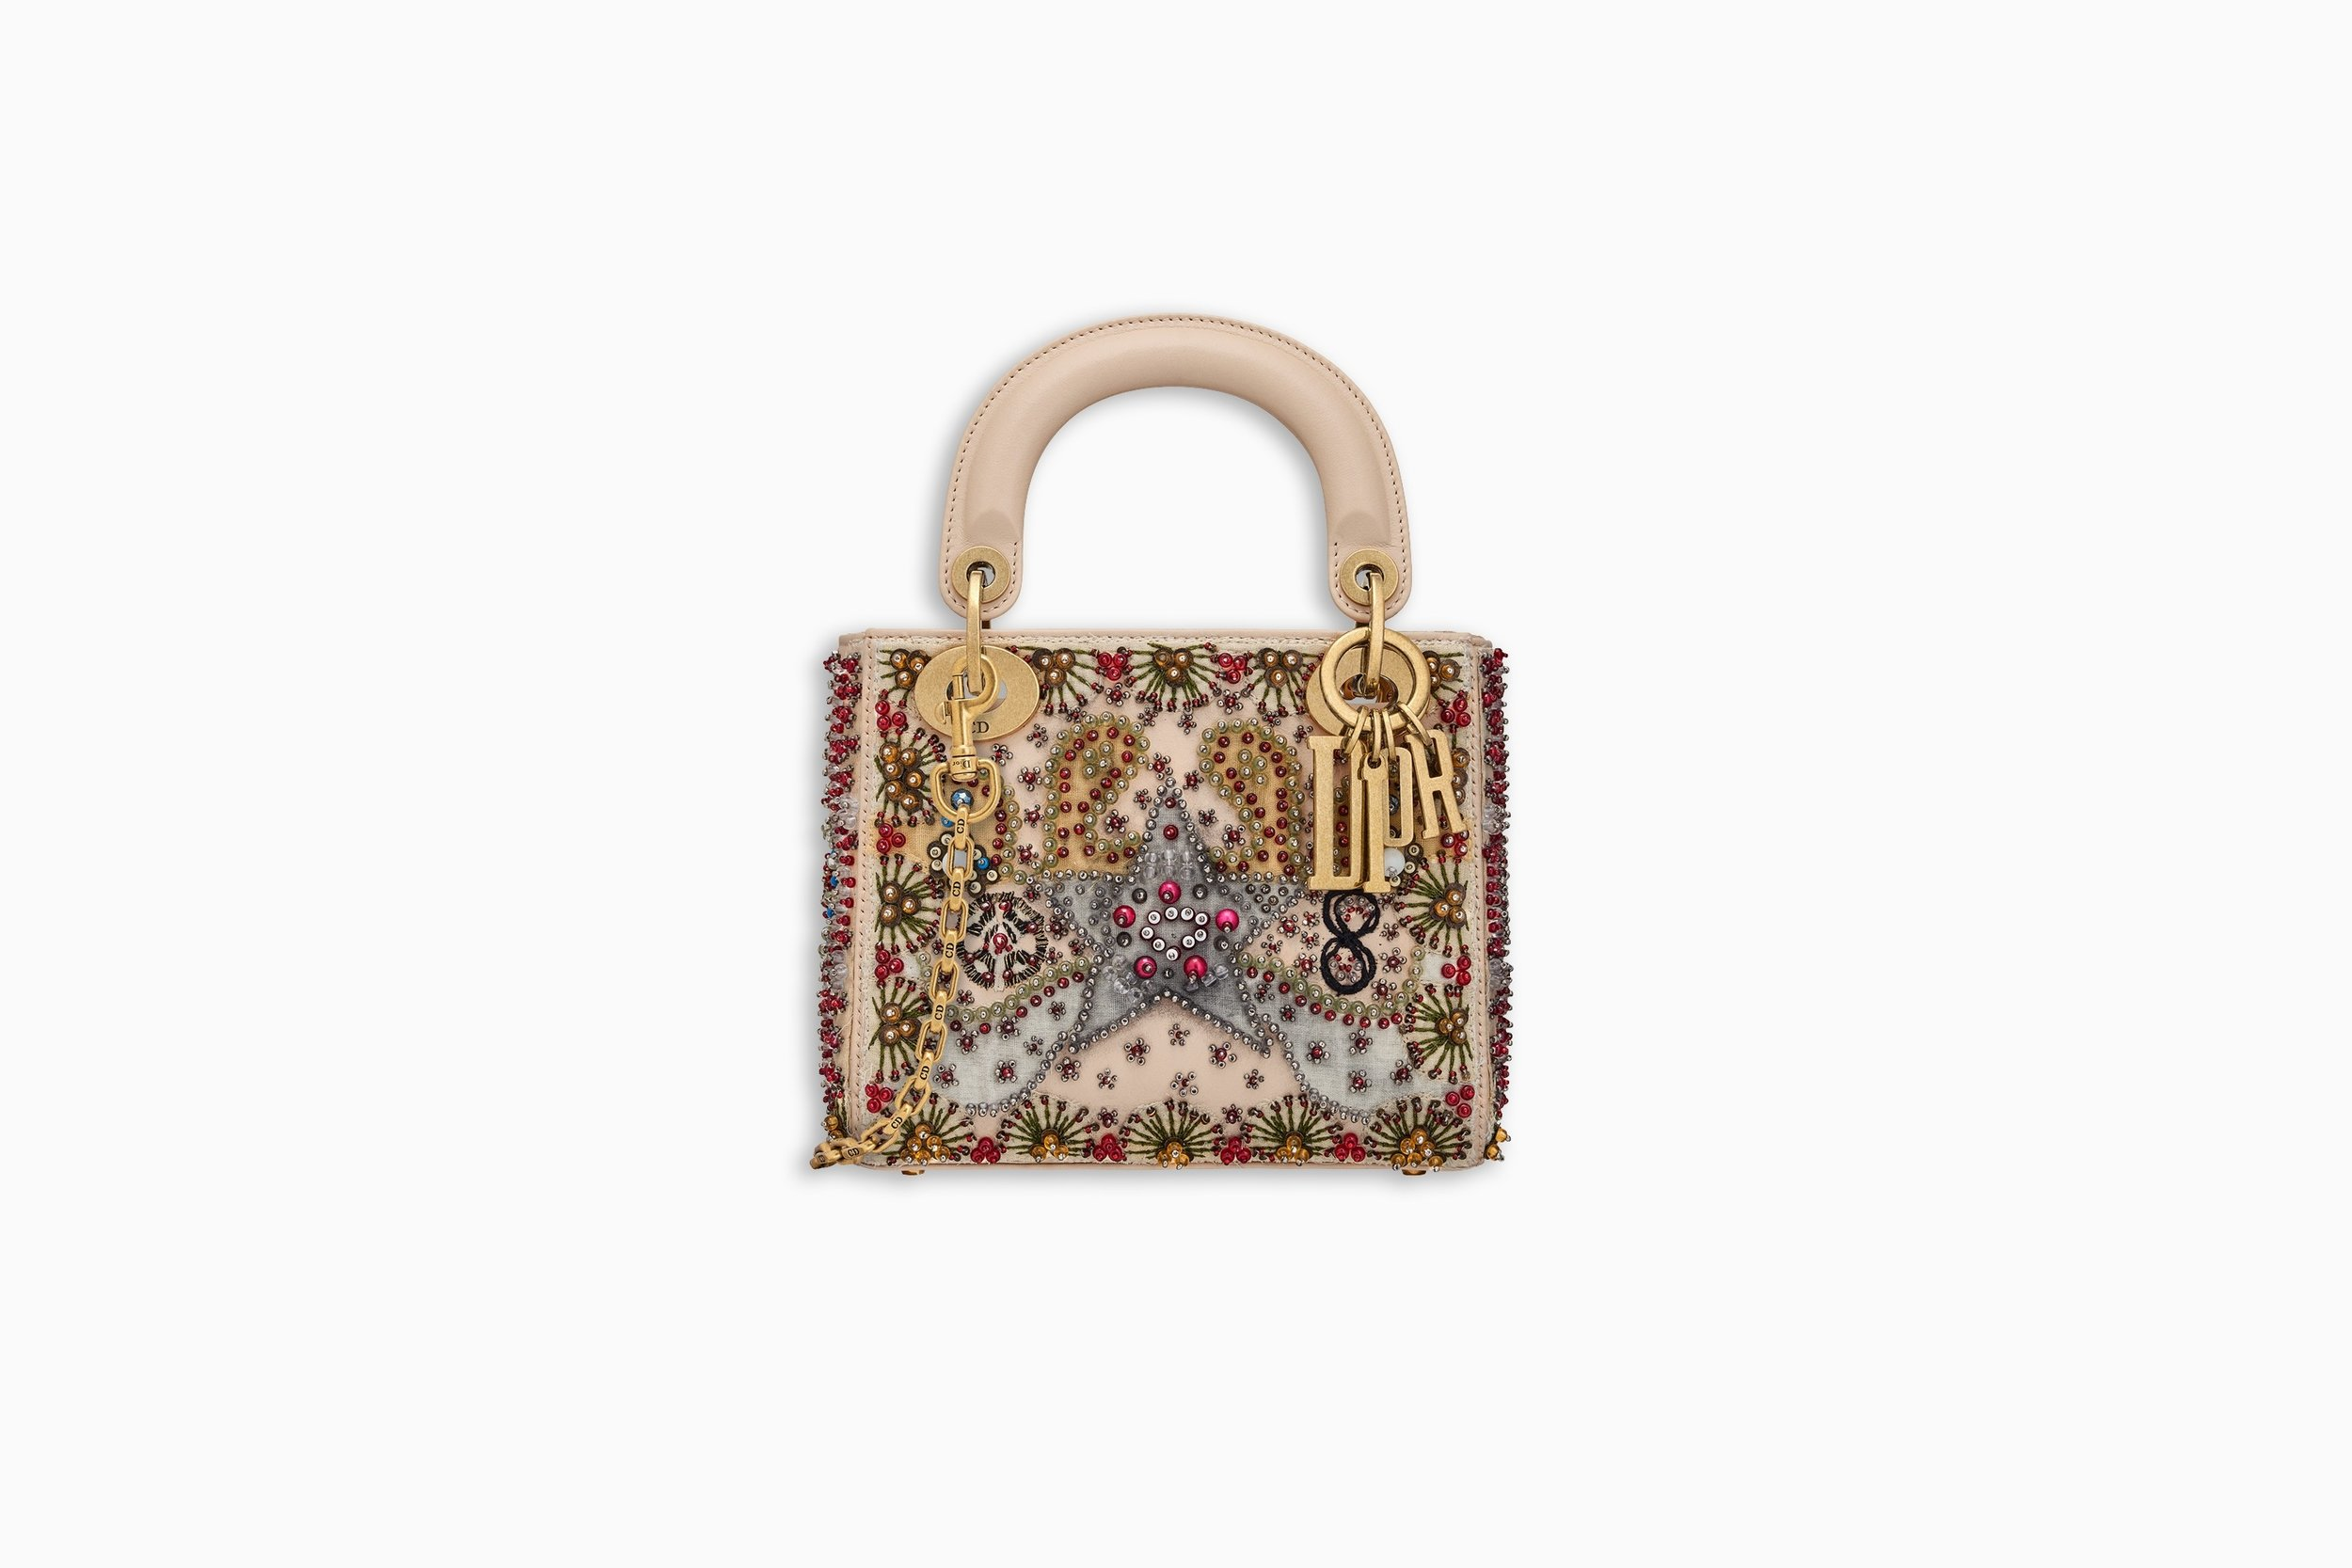 CRUISE 2018 MINI LADY DIOR BAG - Avaliable in nearby boutiques